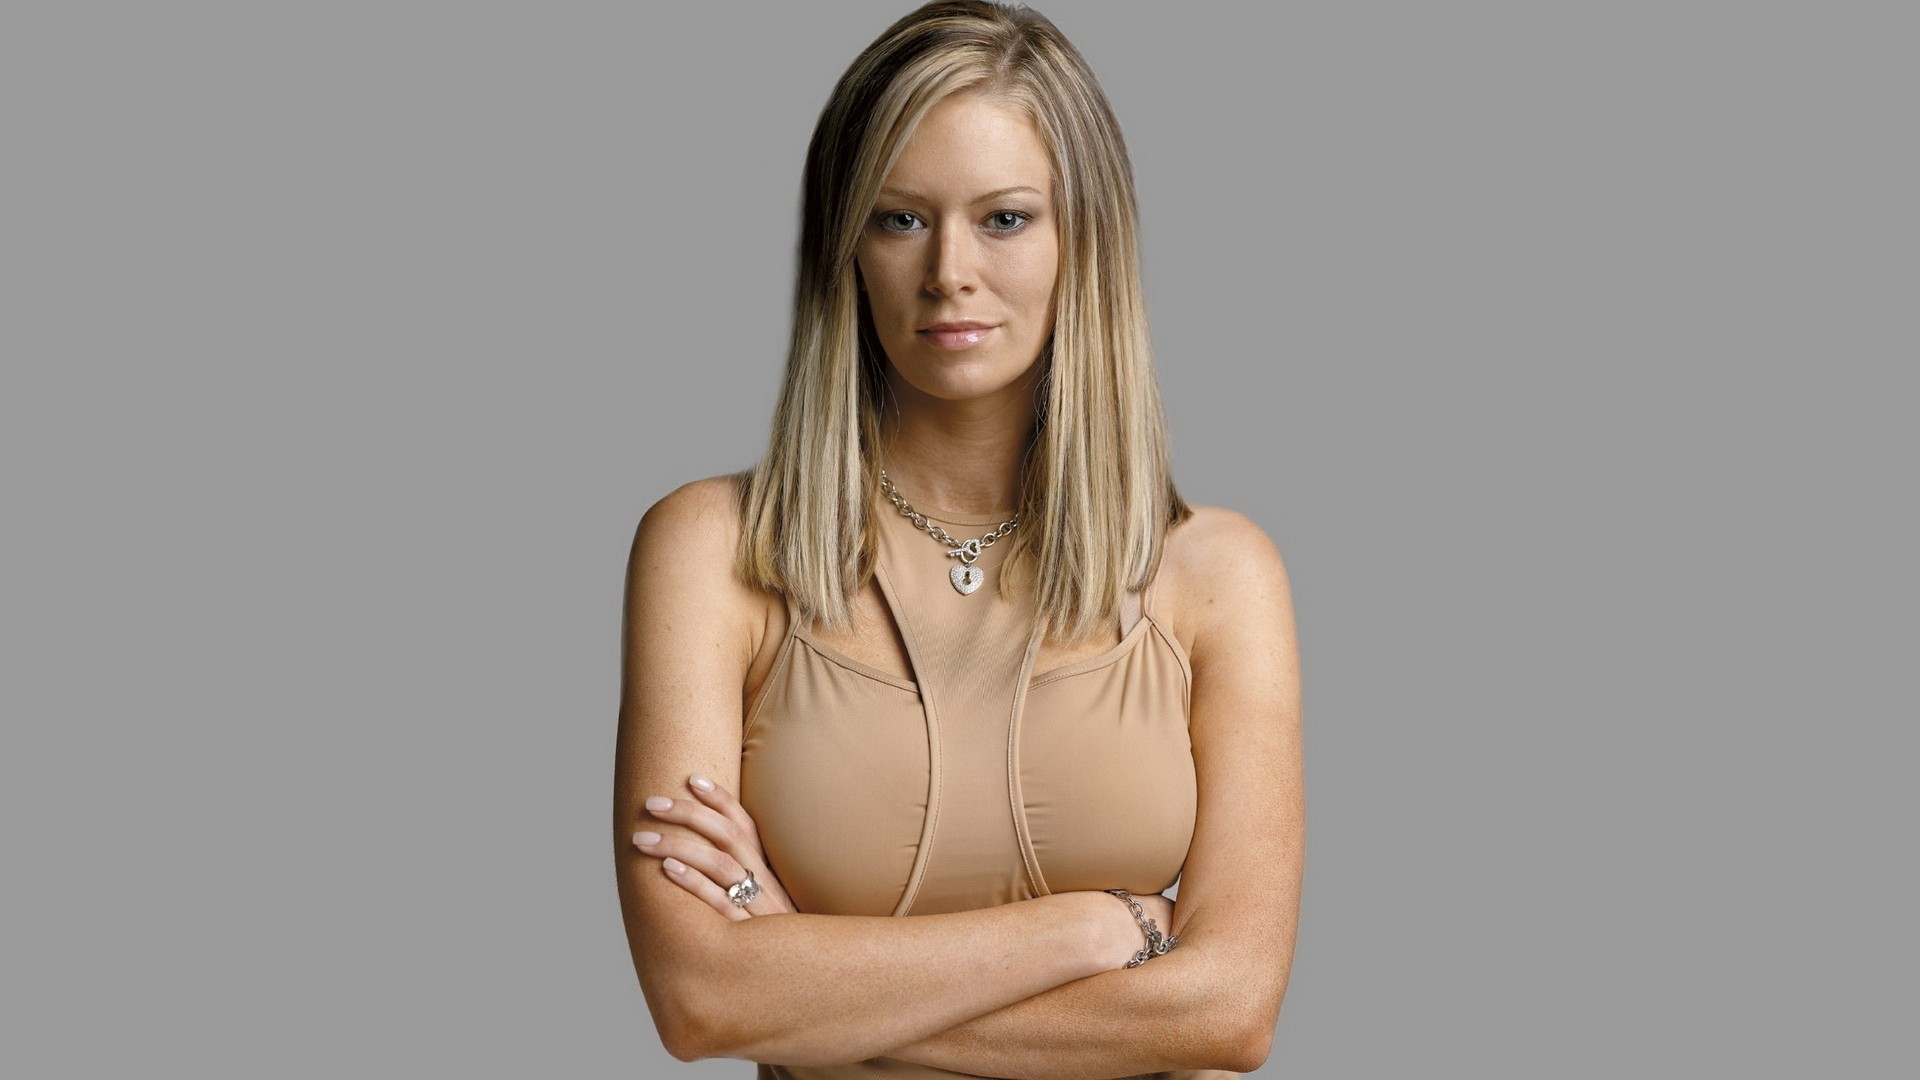 Jenna Jameson Hd Background